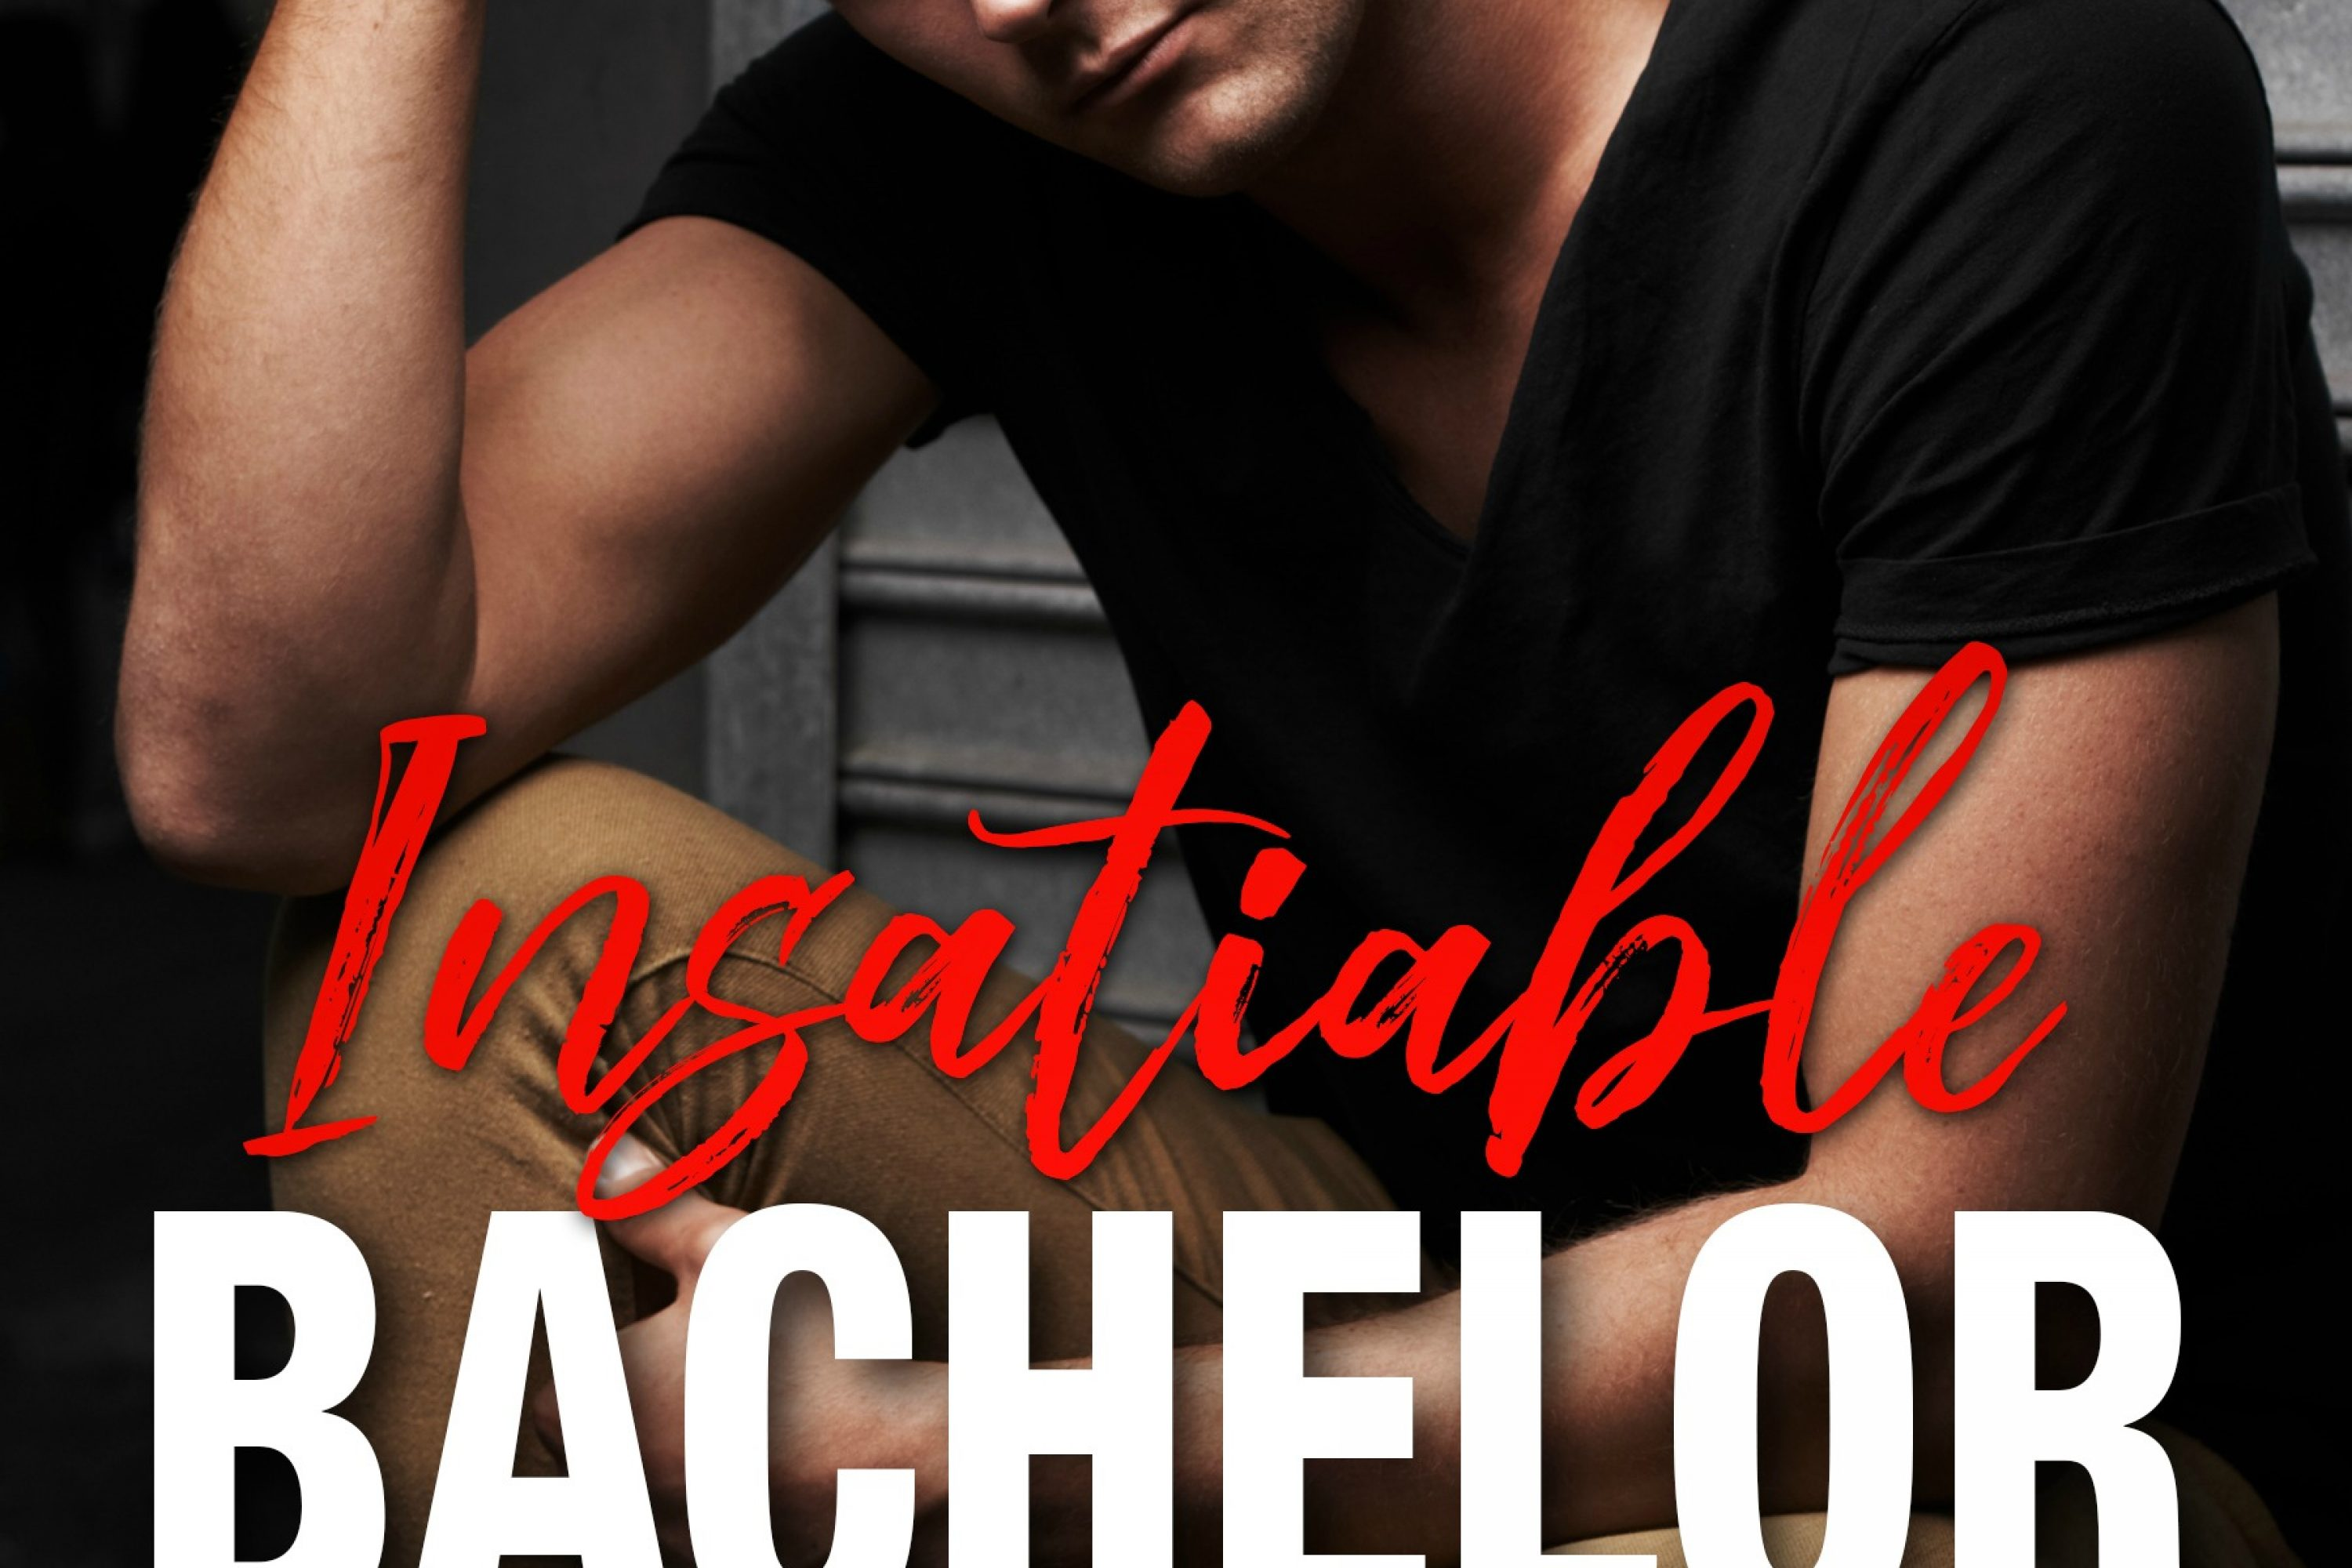 Review: Insatiable Bachelor by Ruth Cardello